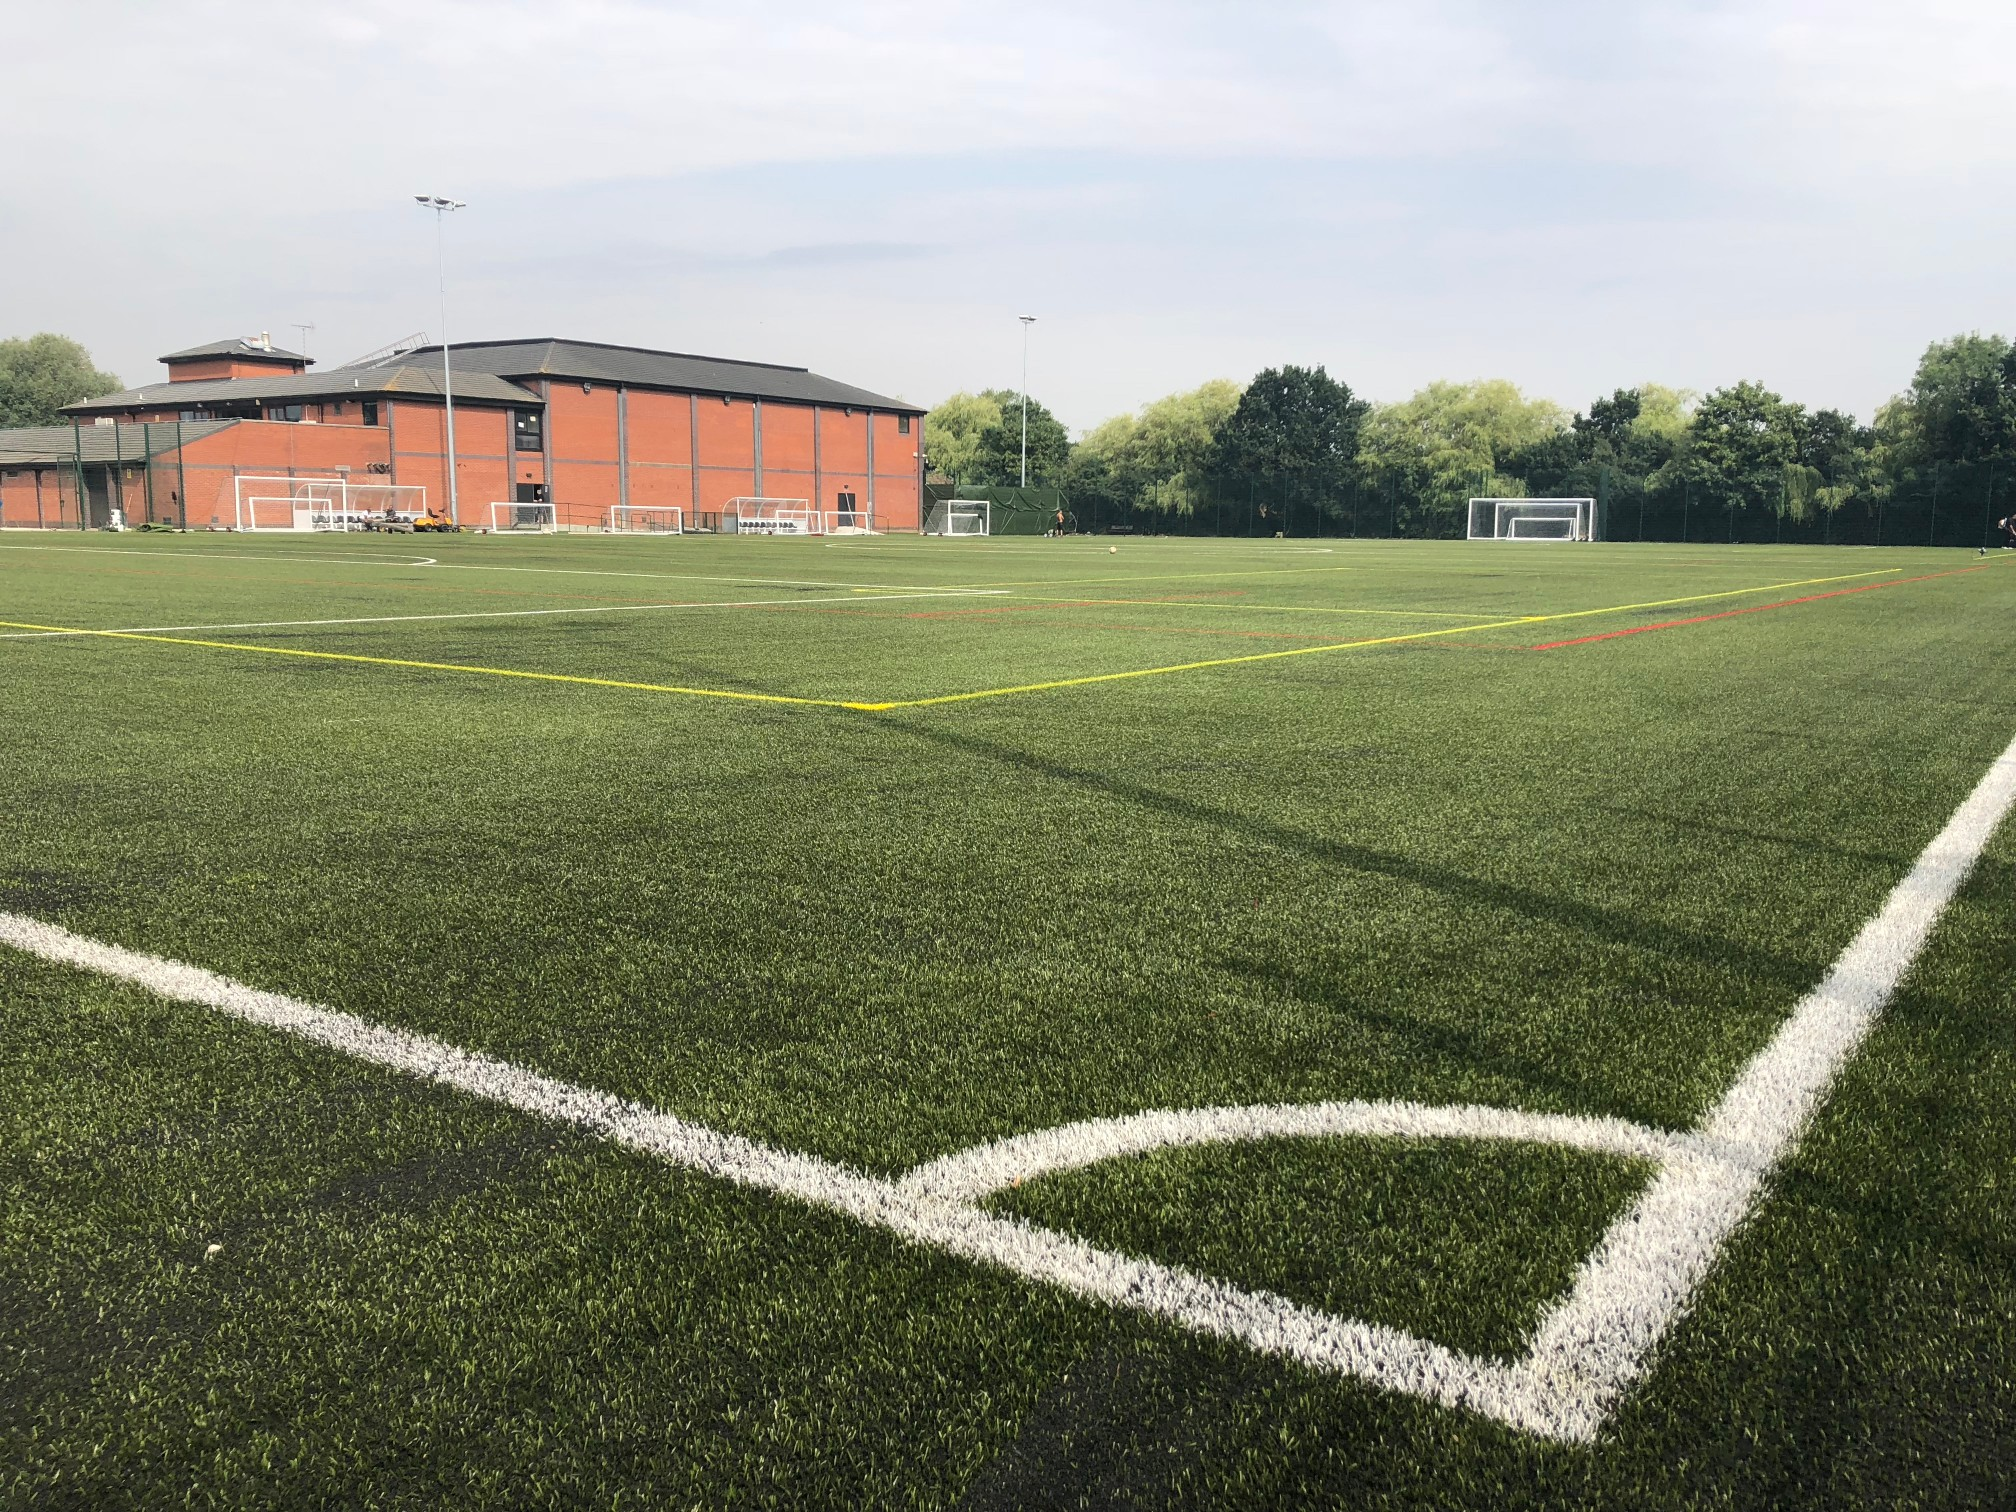 ETC Sports Surfaces provide 3G pitch construction services for UK schools, clubs and public facilities